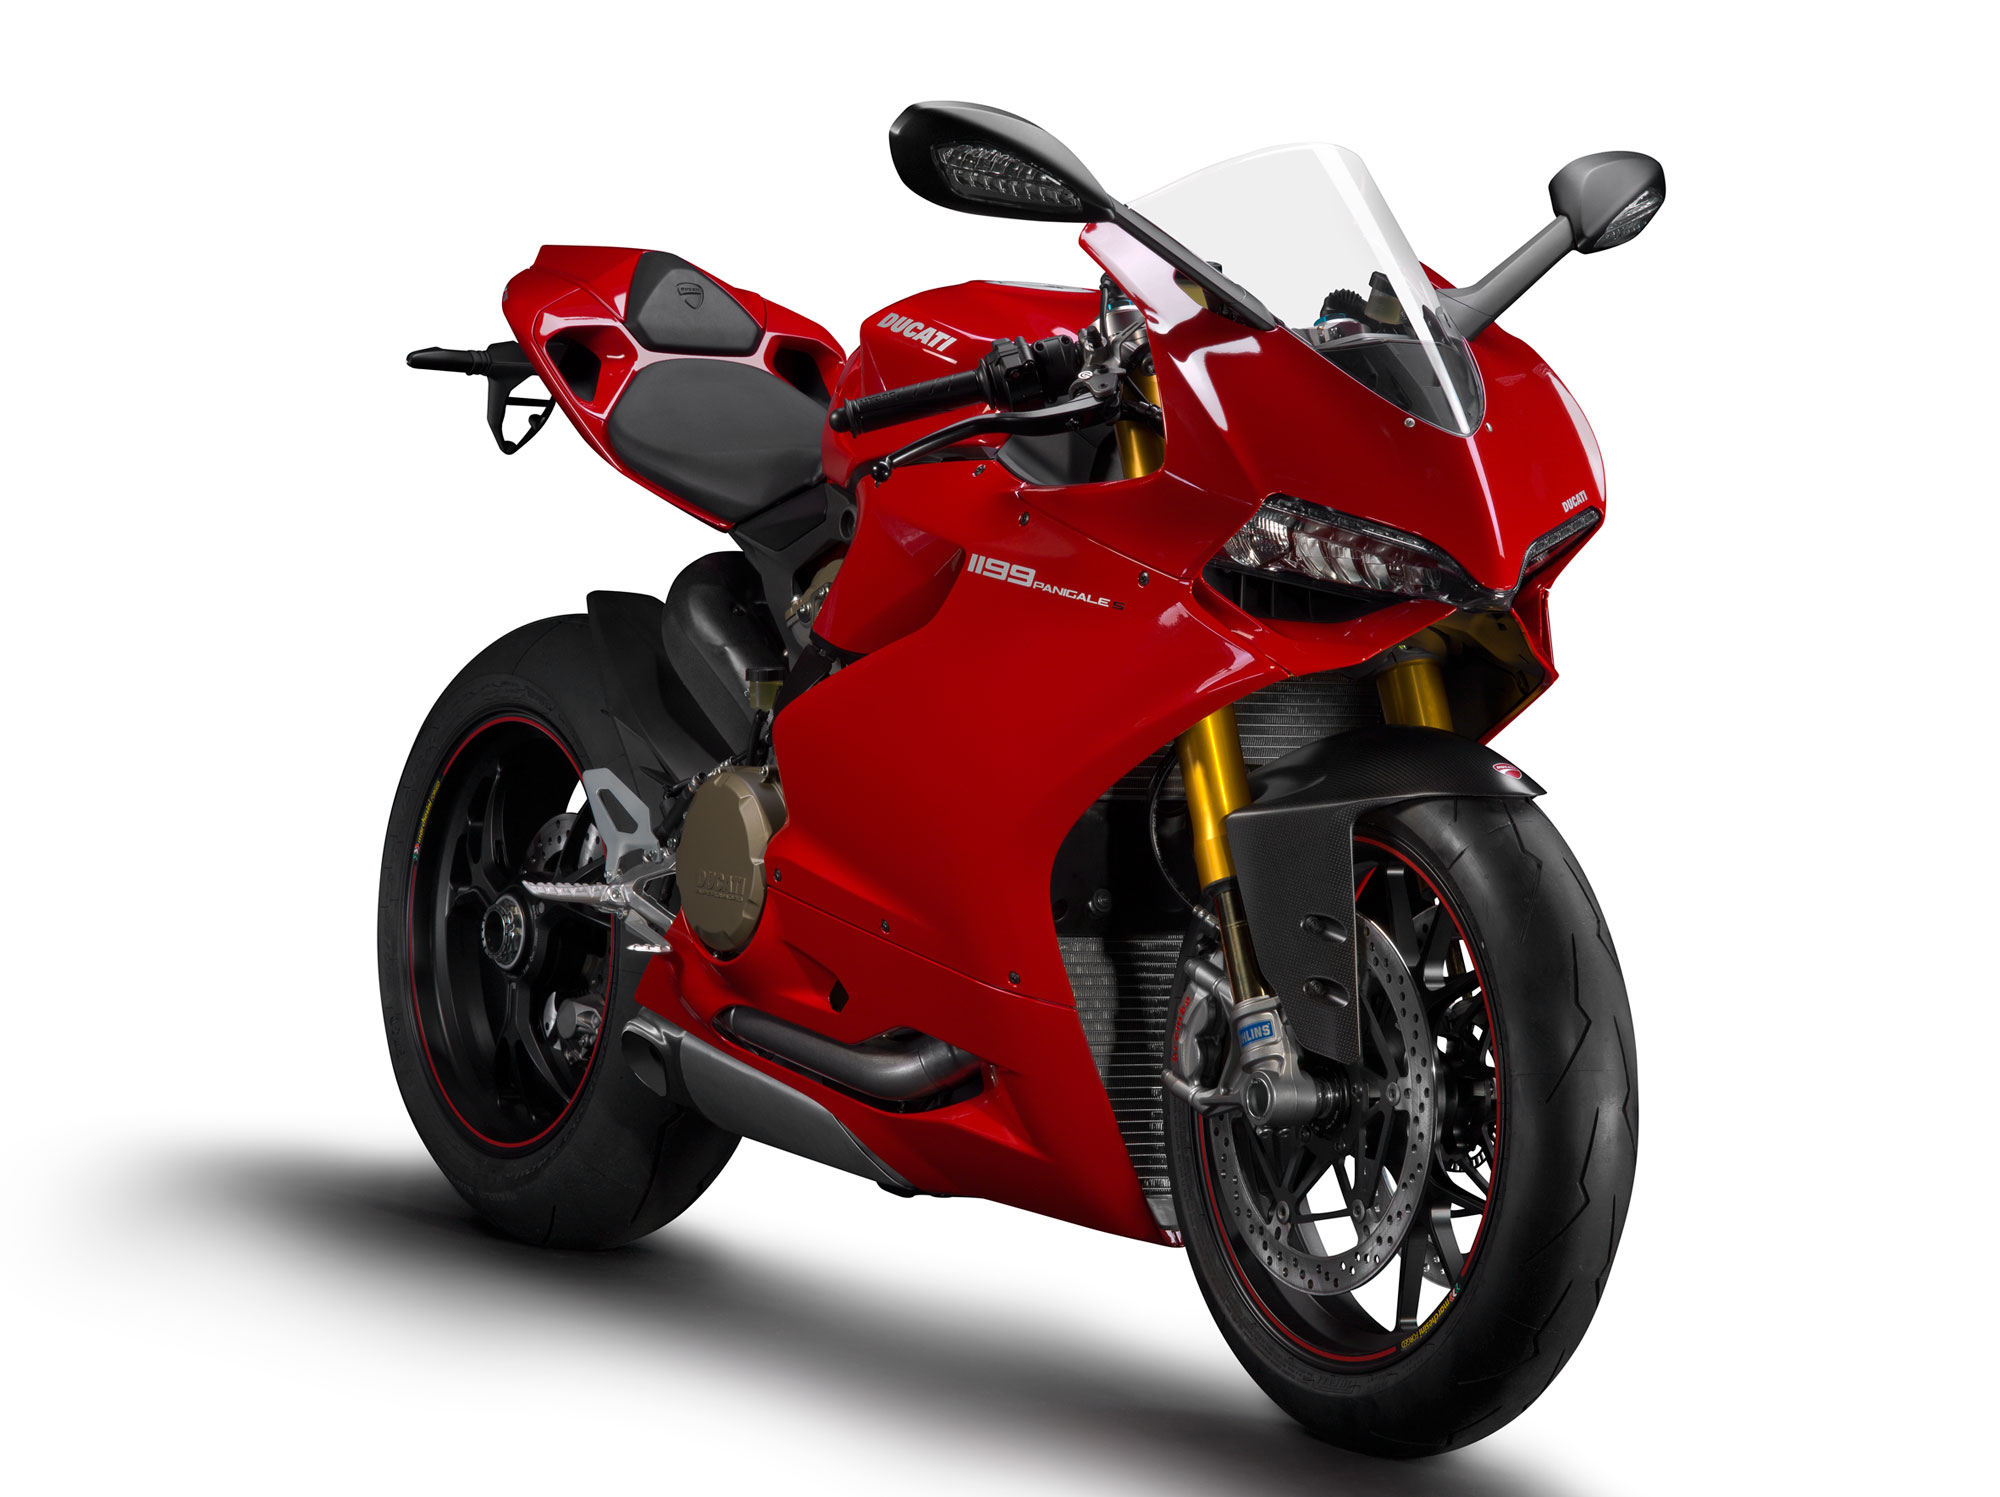 ducati chosen to represent italy in terms of design 1